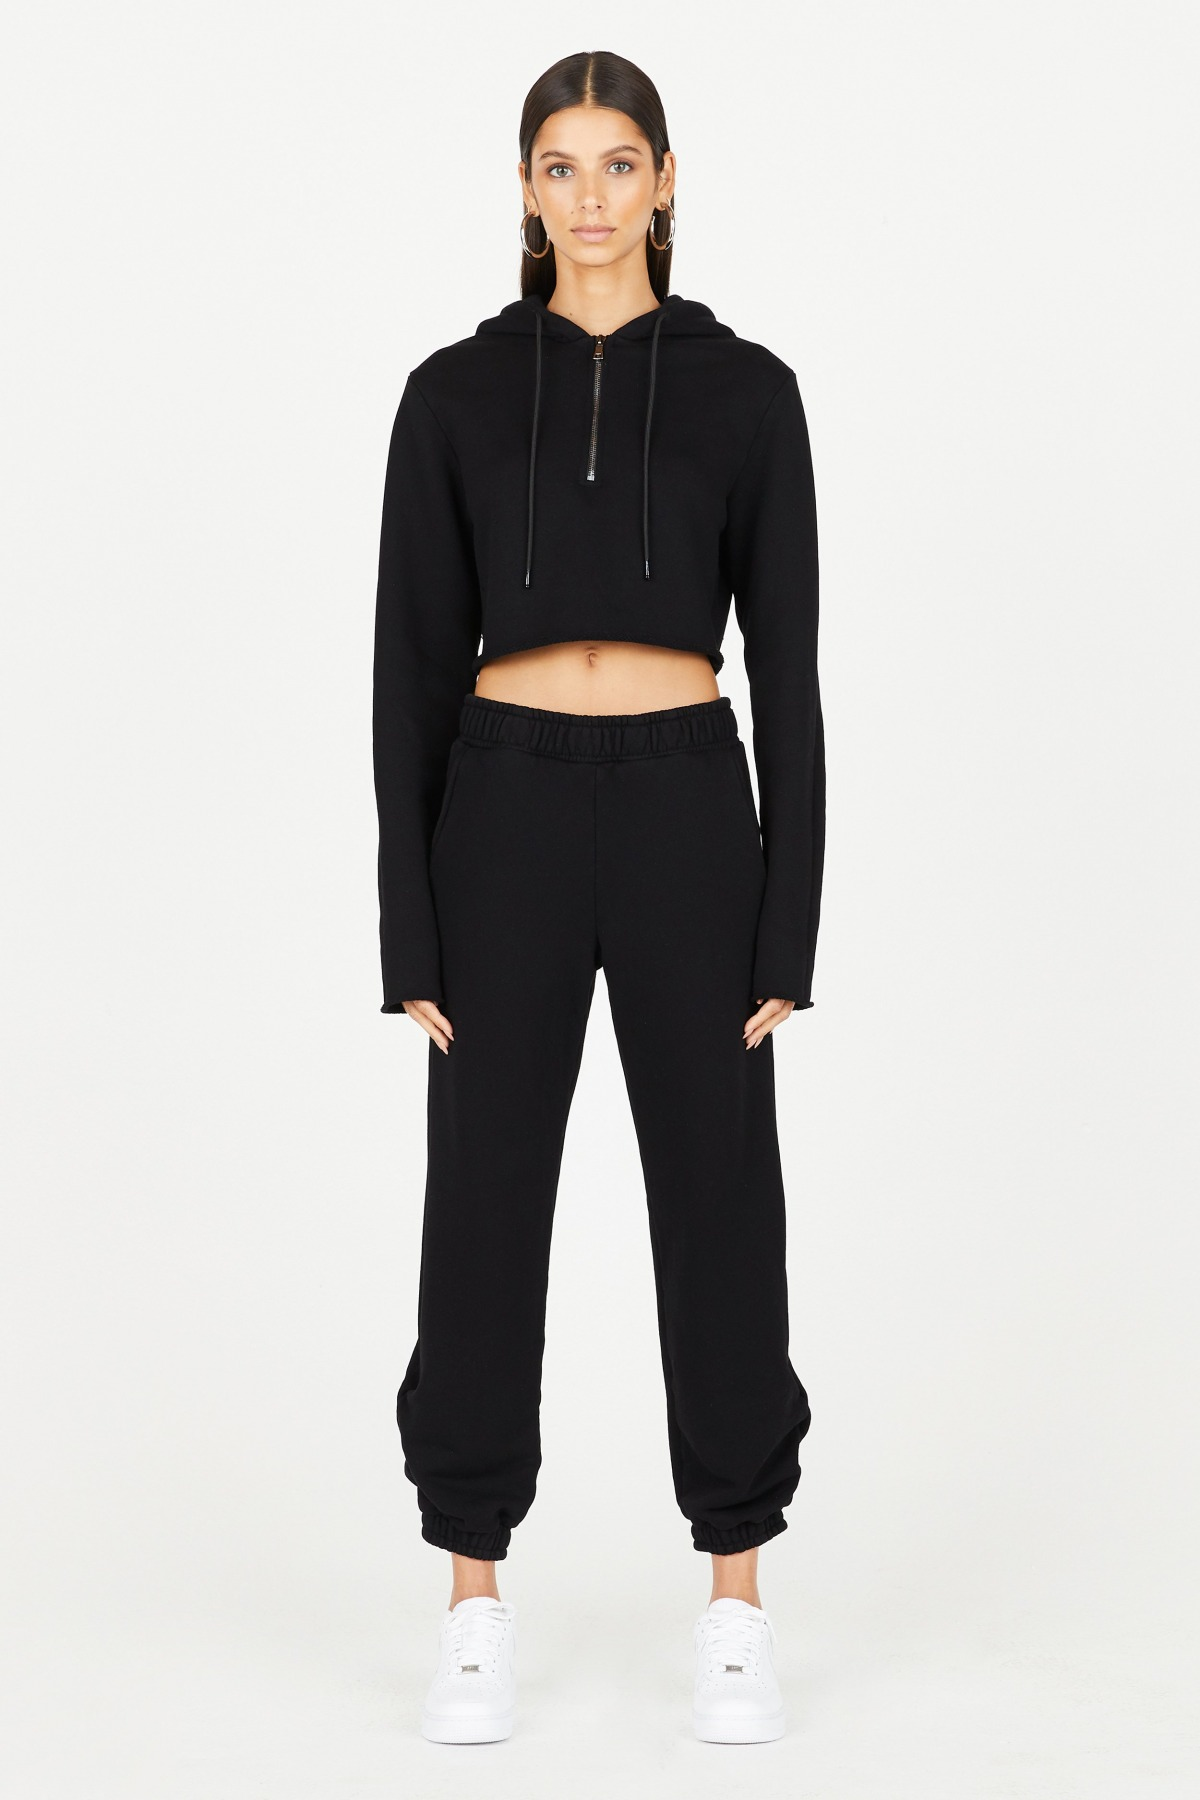 Brooklyn Sweatpants by Cotton Citizen, available on cottoncitizen.com for $225 Kourtney Kardashian Pants Exact Product